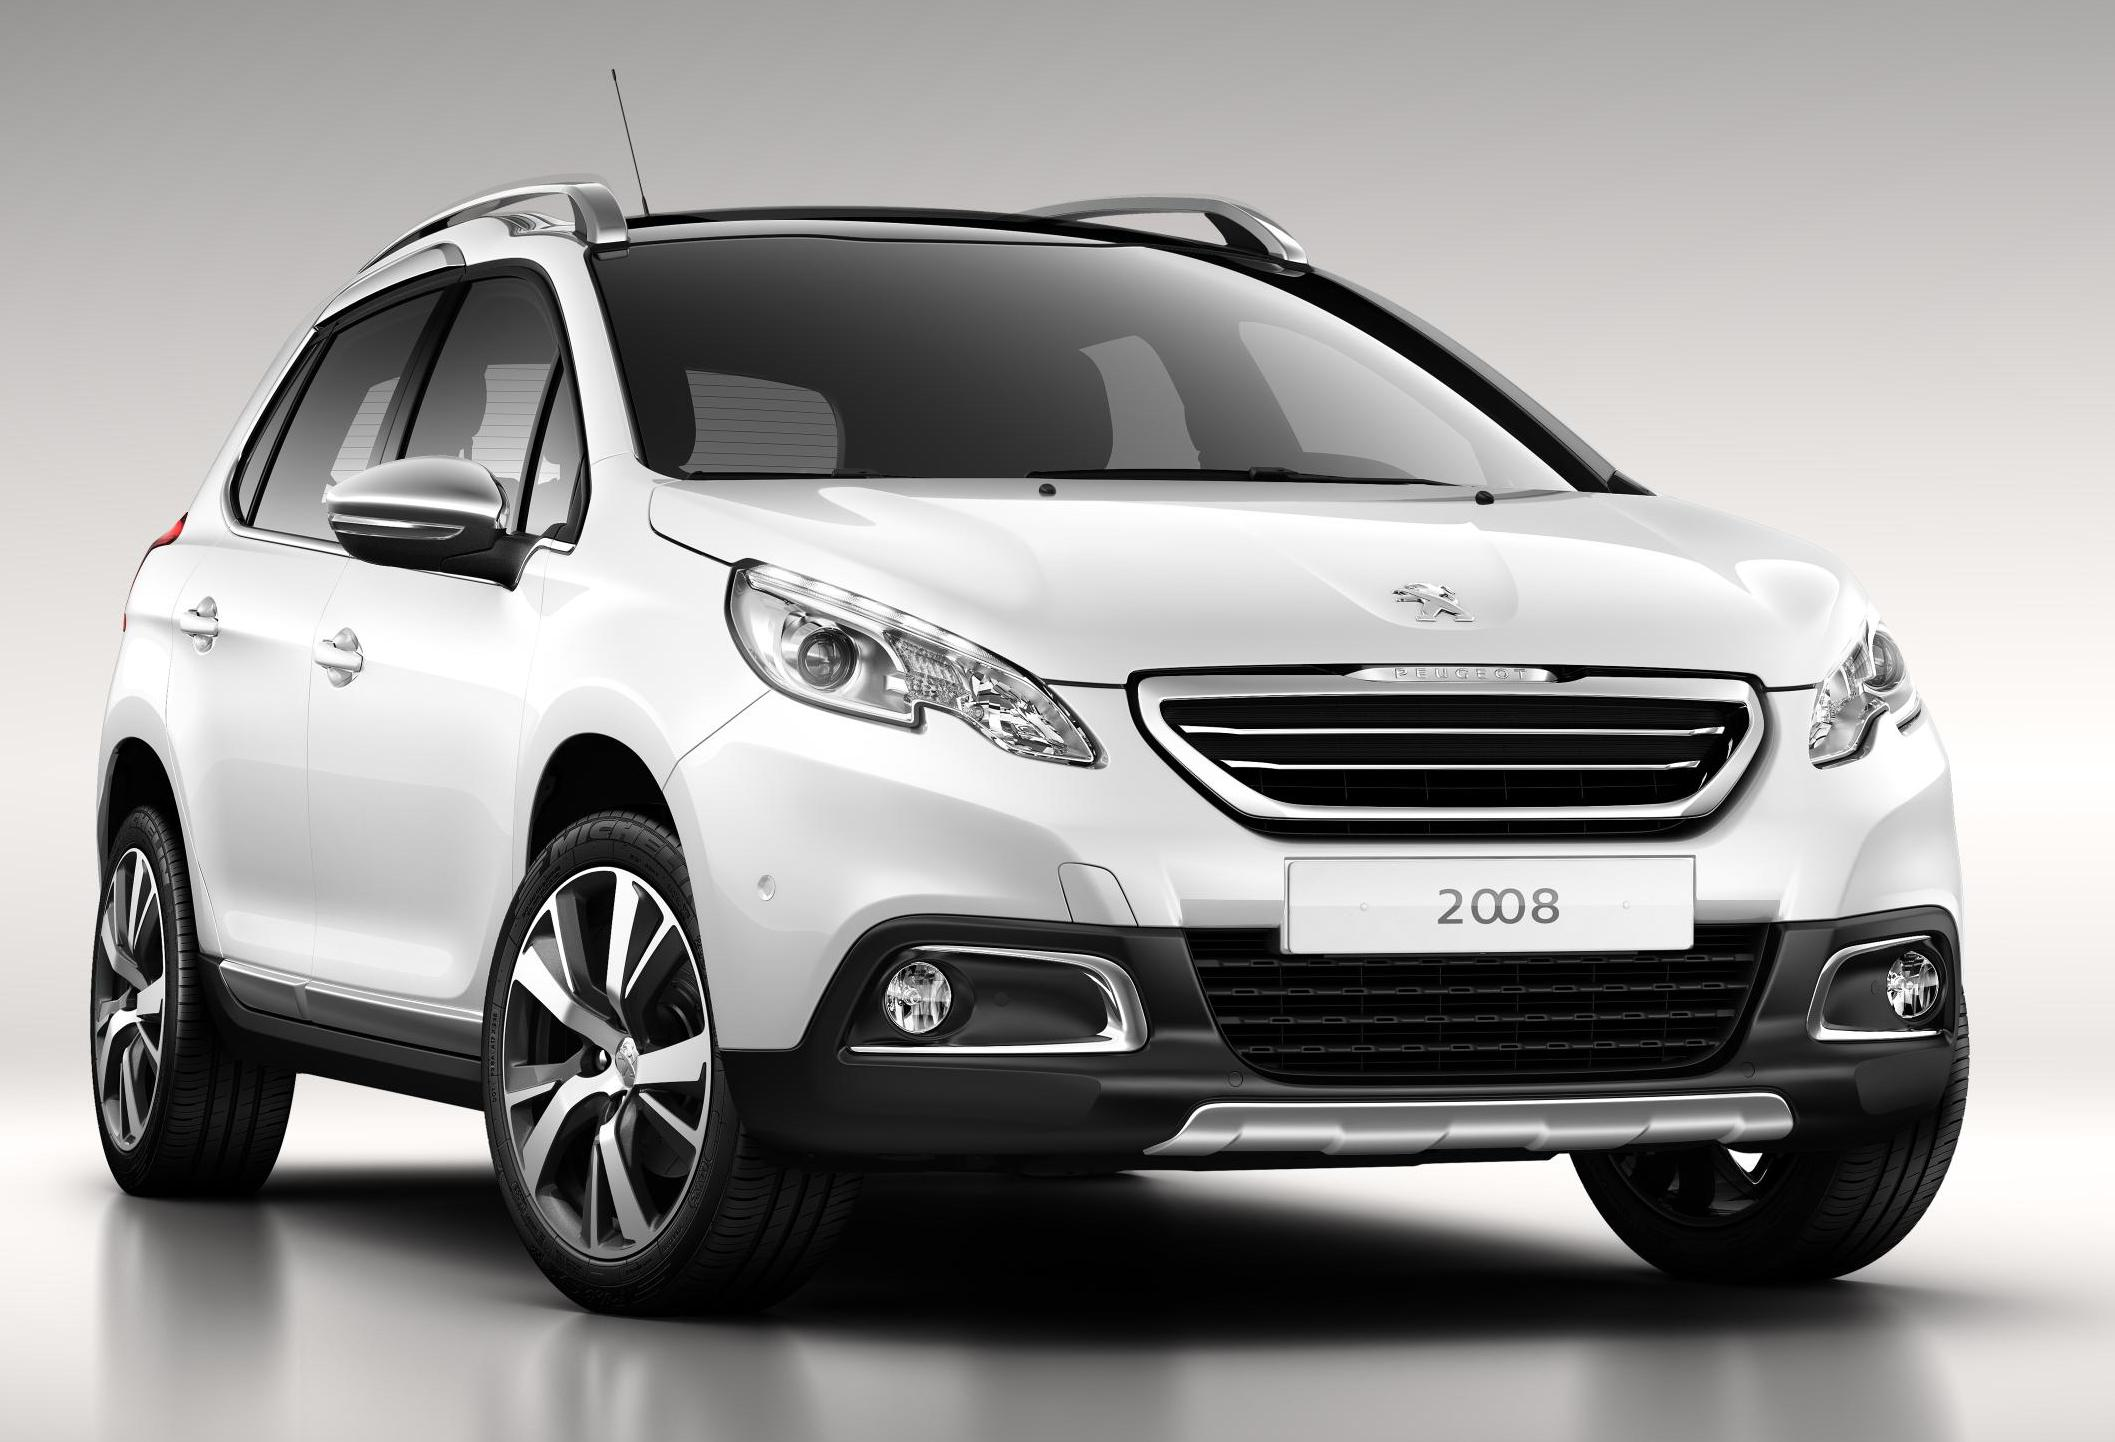 new peugeot 2008 2013 crossover suv prices spec revealed. Black Bedroom Furniture Sets. Home Design Ideas